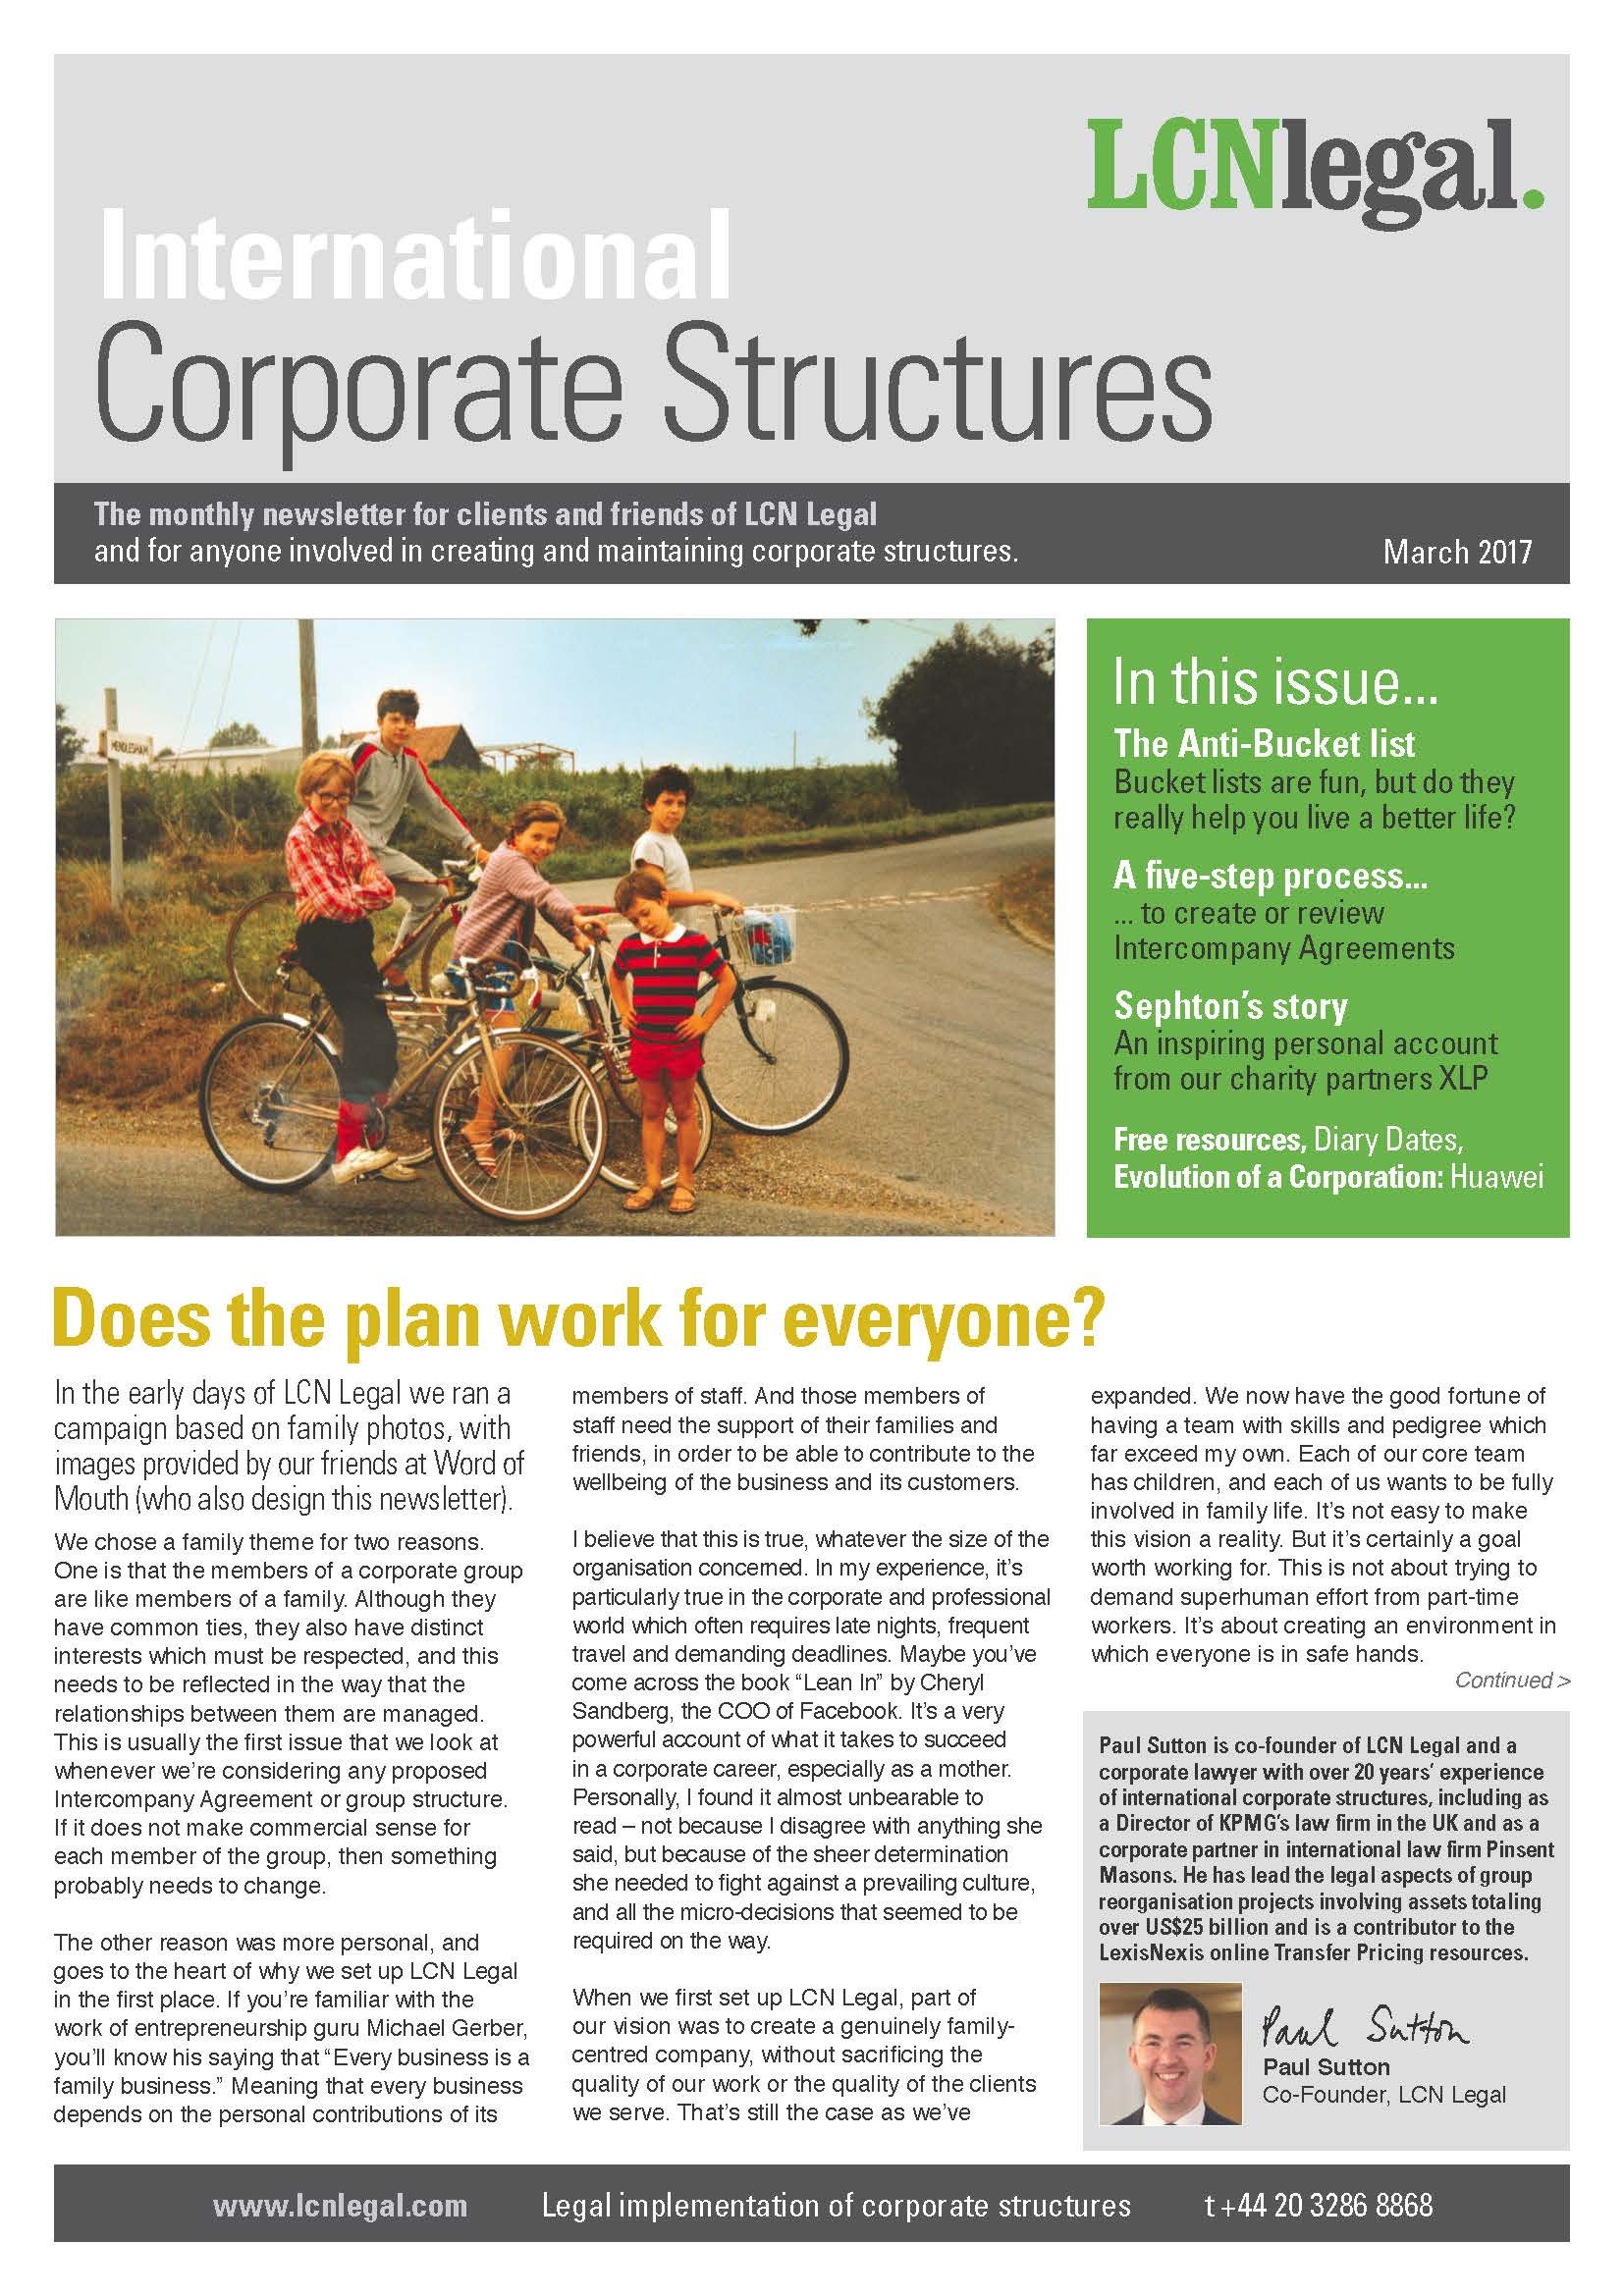 International Corporate Structures Newsletter - March 2017